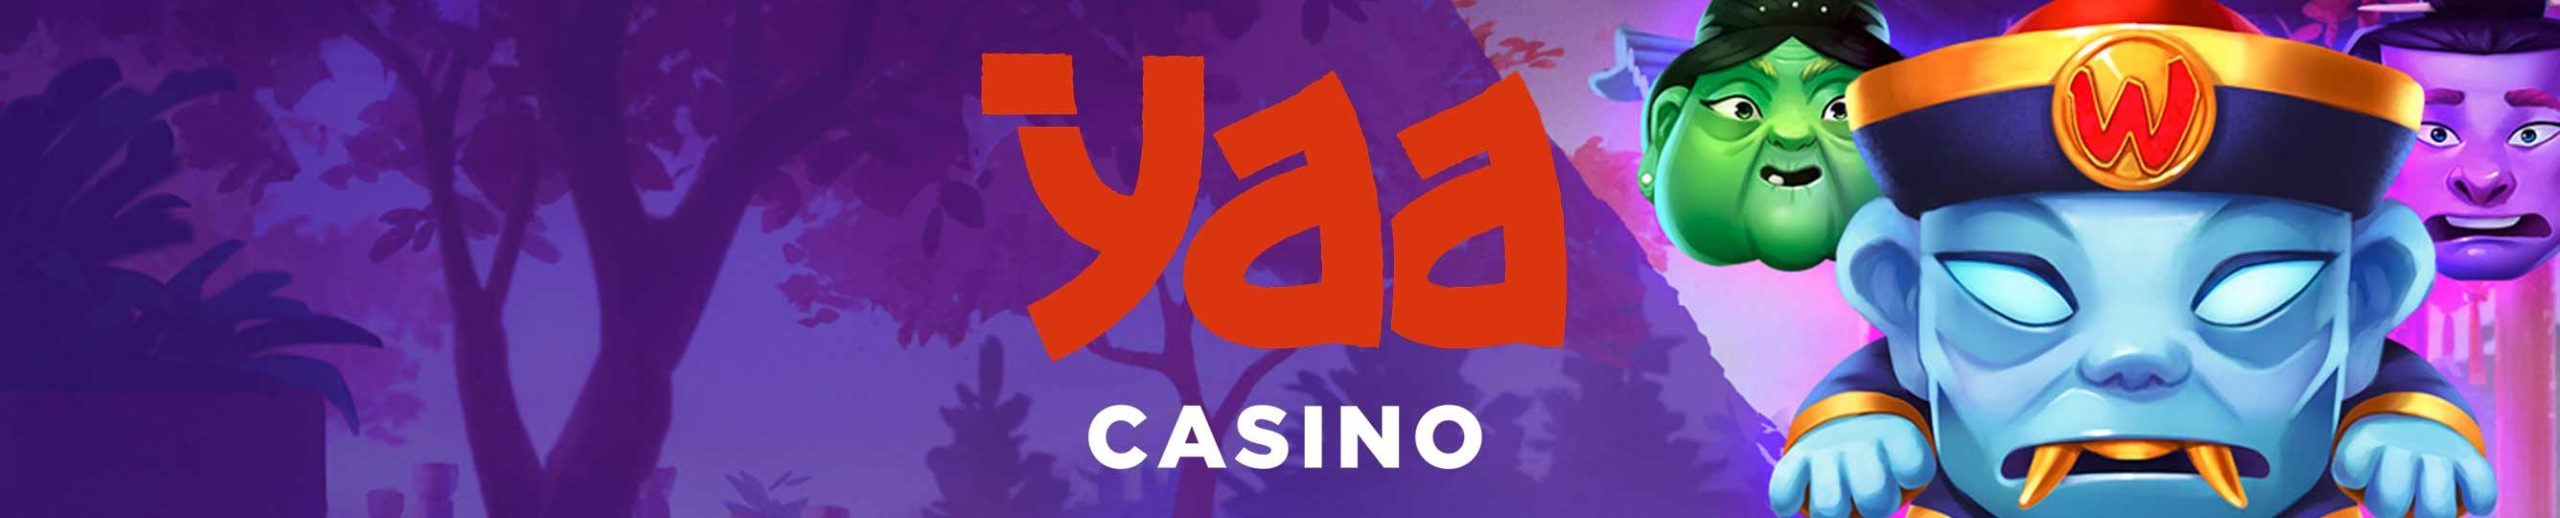 Yaa-Casino-Test